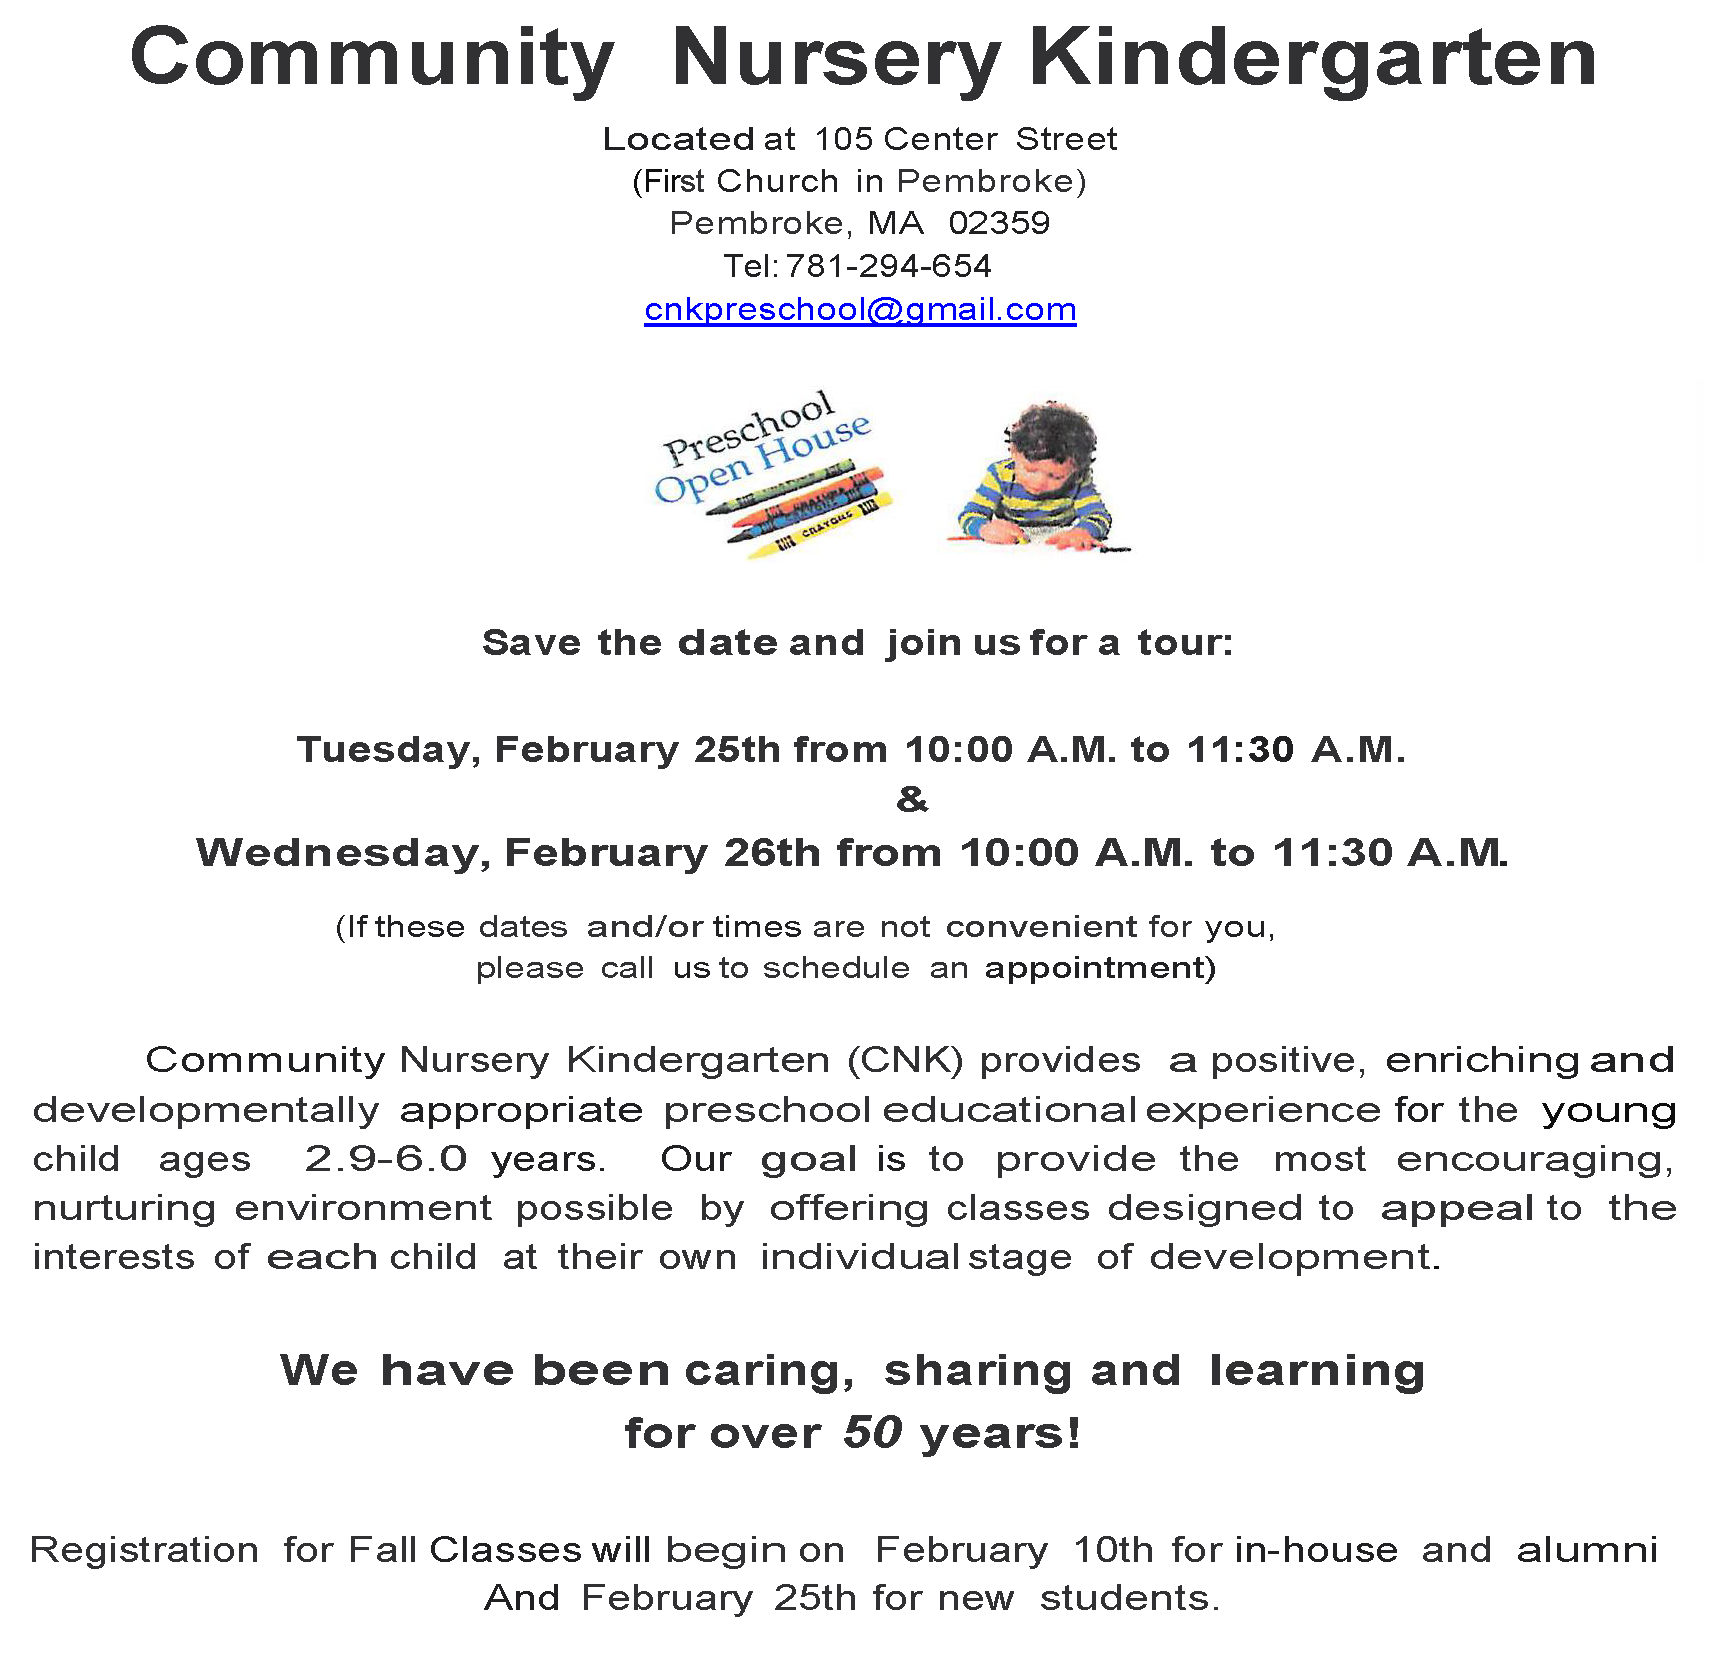 Community Nursery Kindergarten (CNK) provides  a positive, enriching and developmentally appropriate preschool educational experience for the young child ages  2.9-6.0 years.  Our goal is to provide the most encouraging, nurturing environment possible by offering classes designed to appeal to the interests of each child at their own individual stage of development.